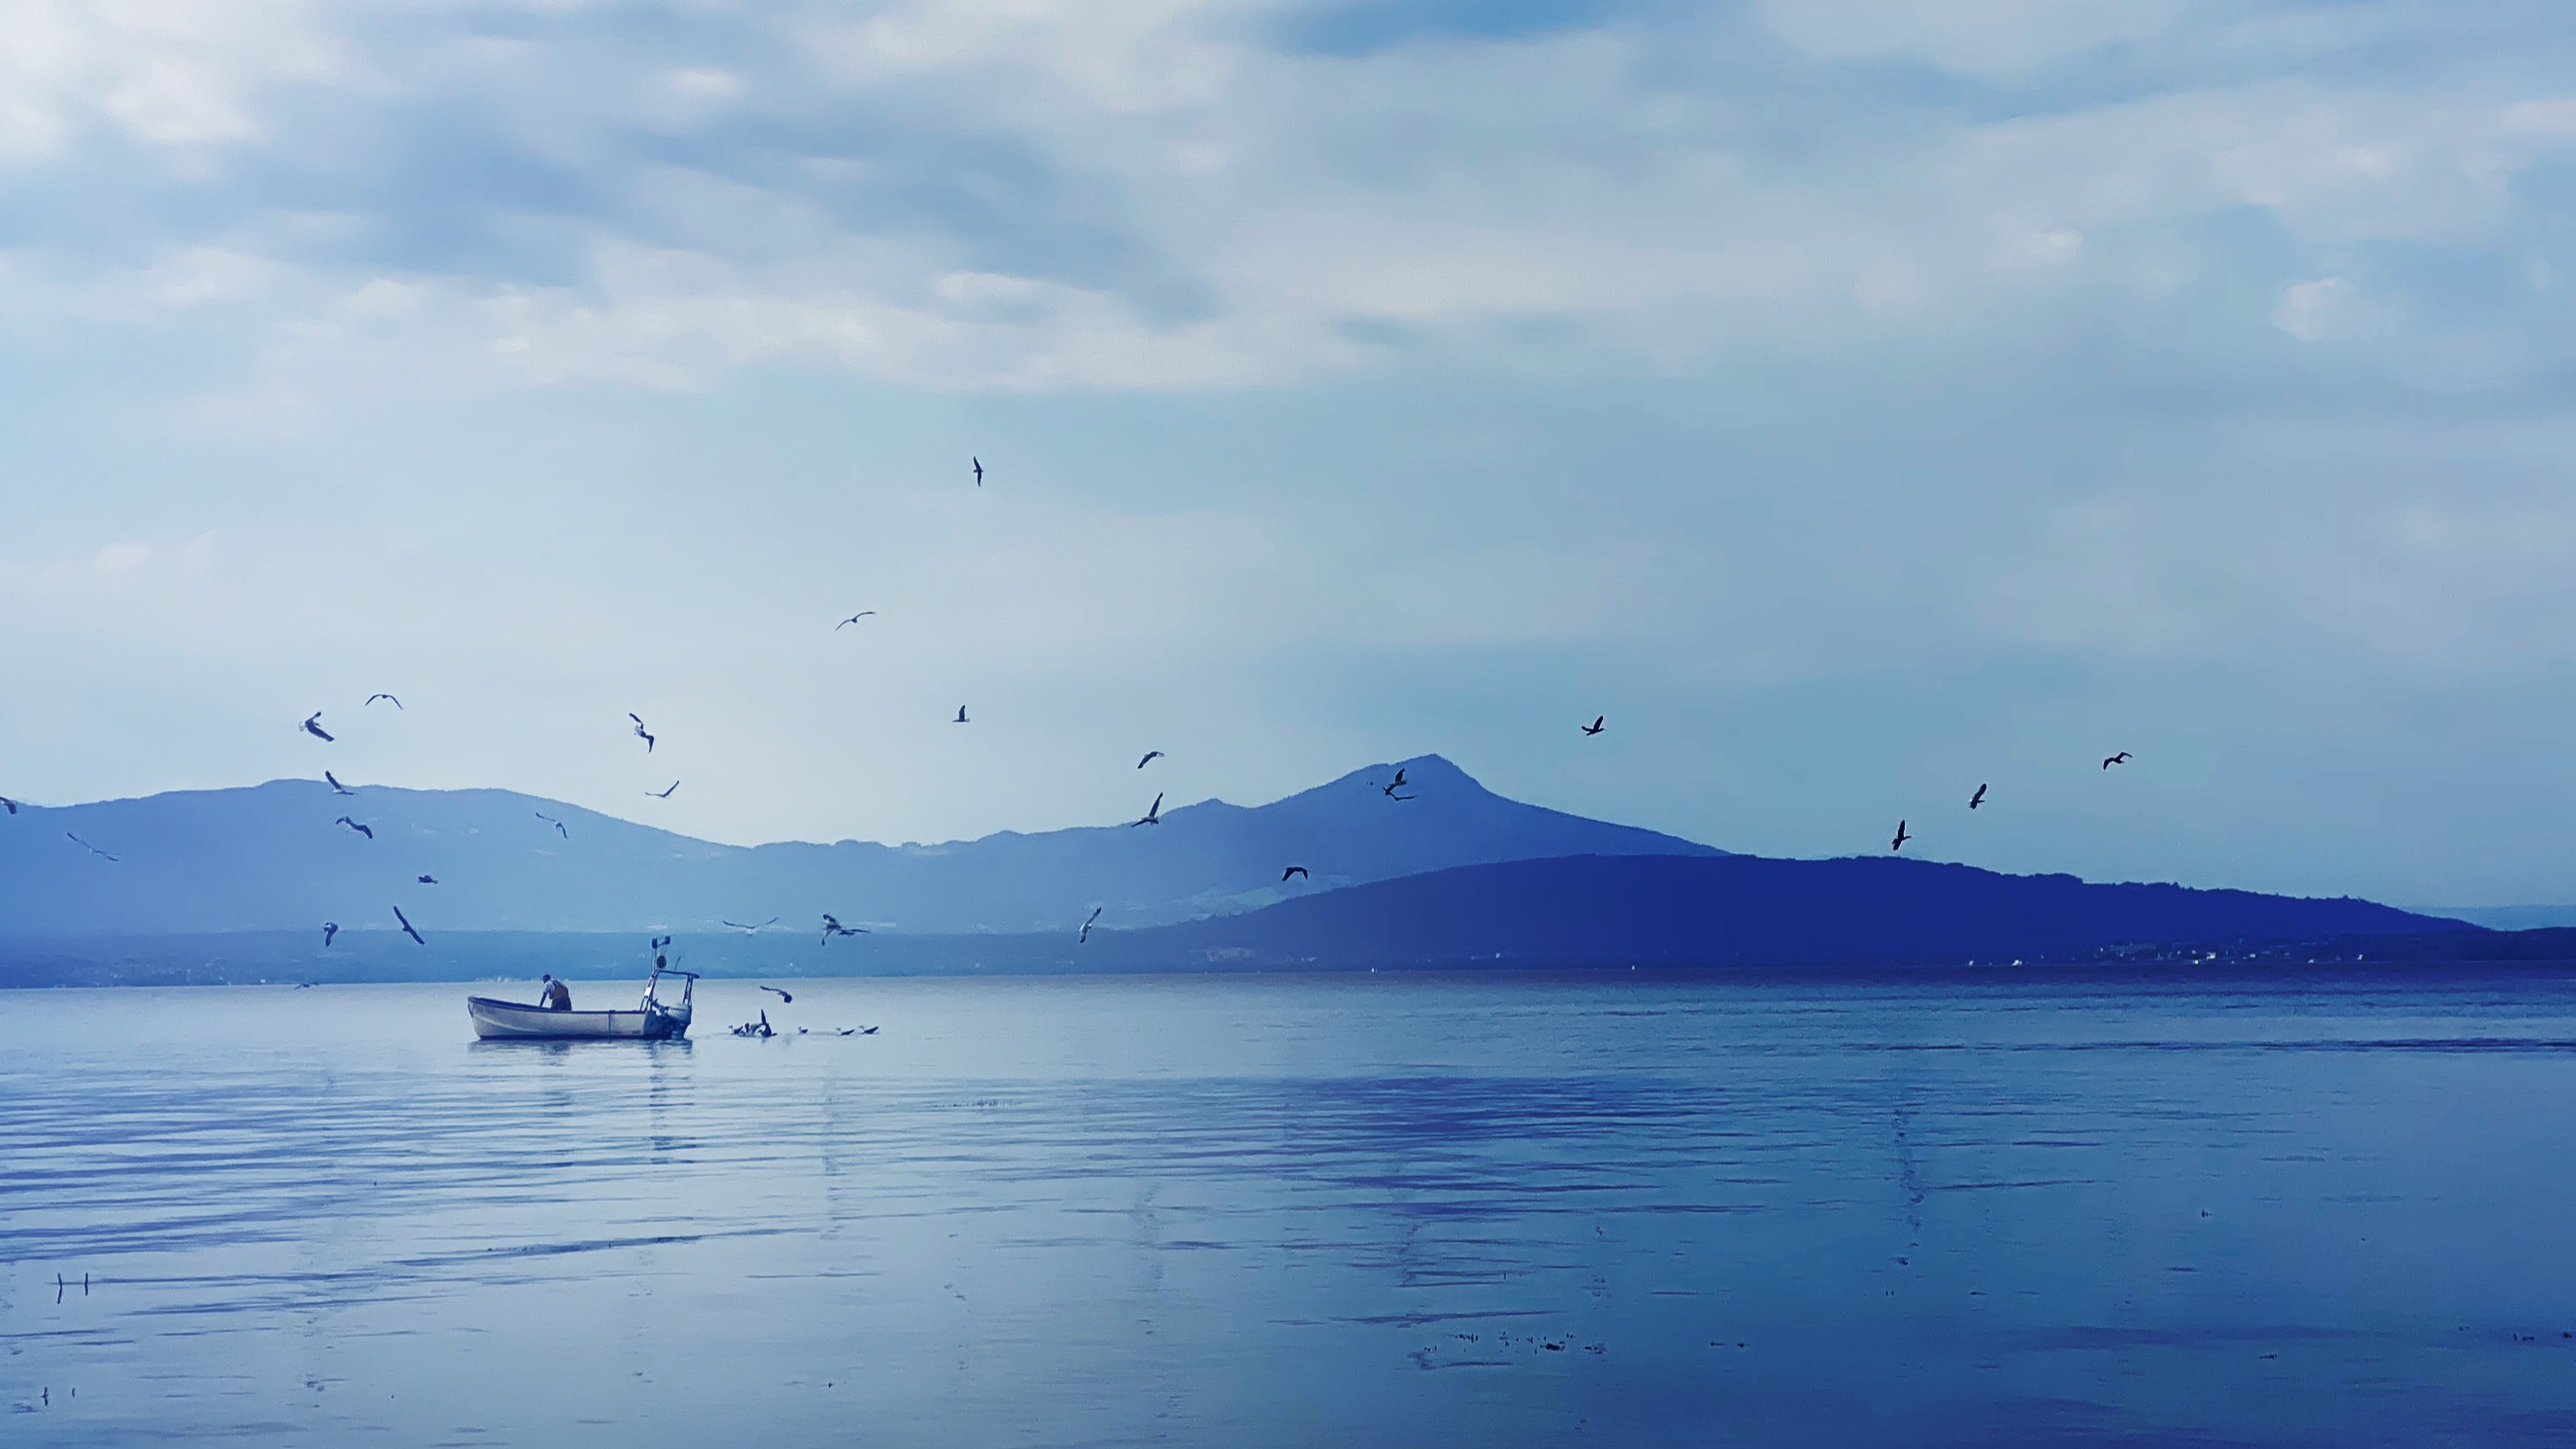 Fishing boat with gulls circling above on a background of mountains